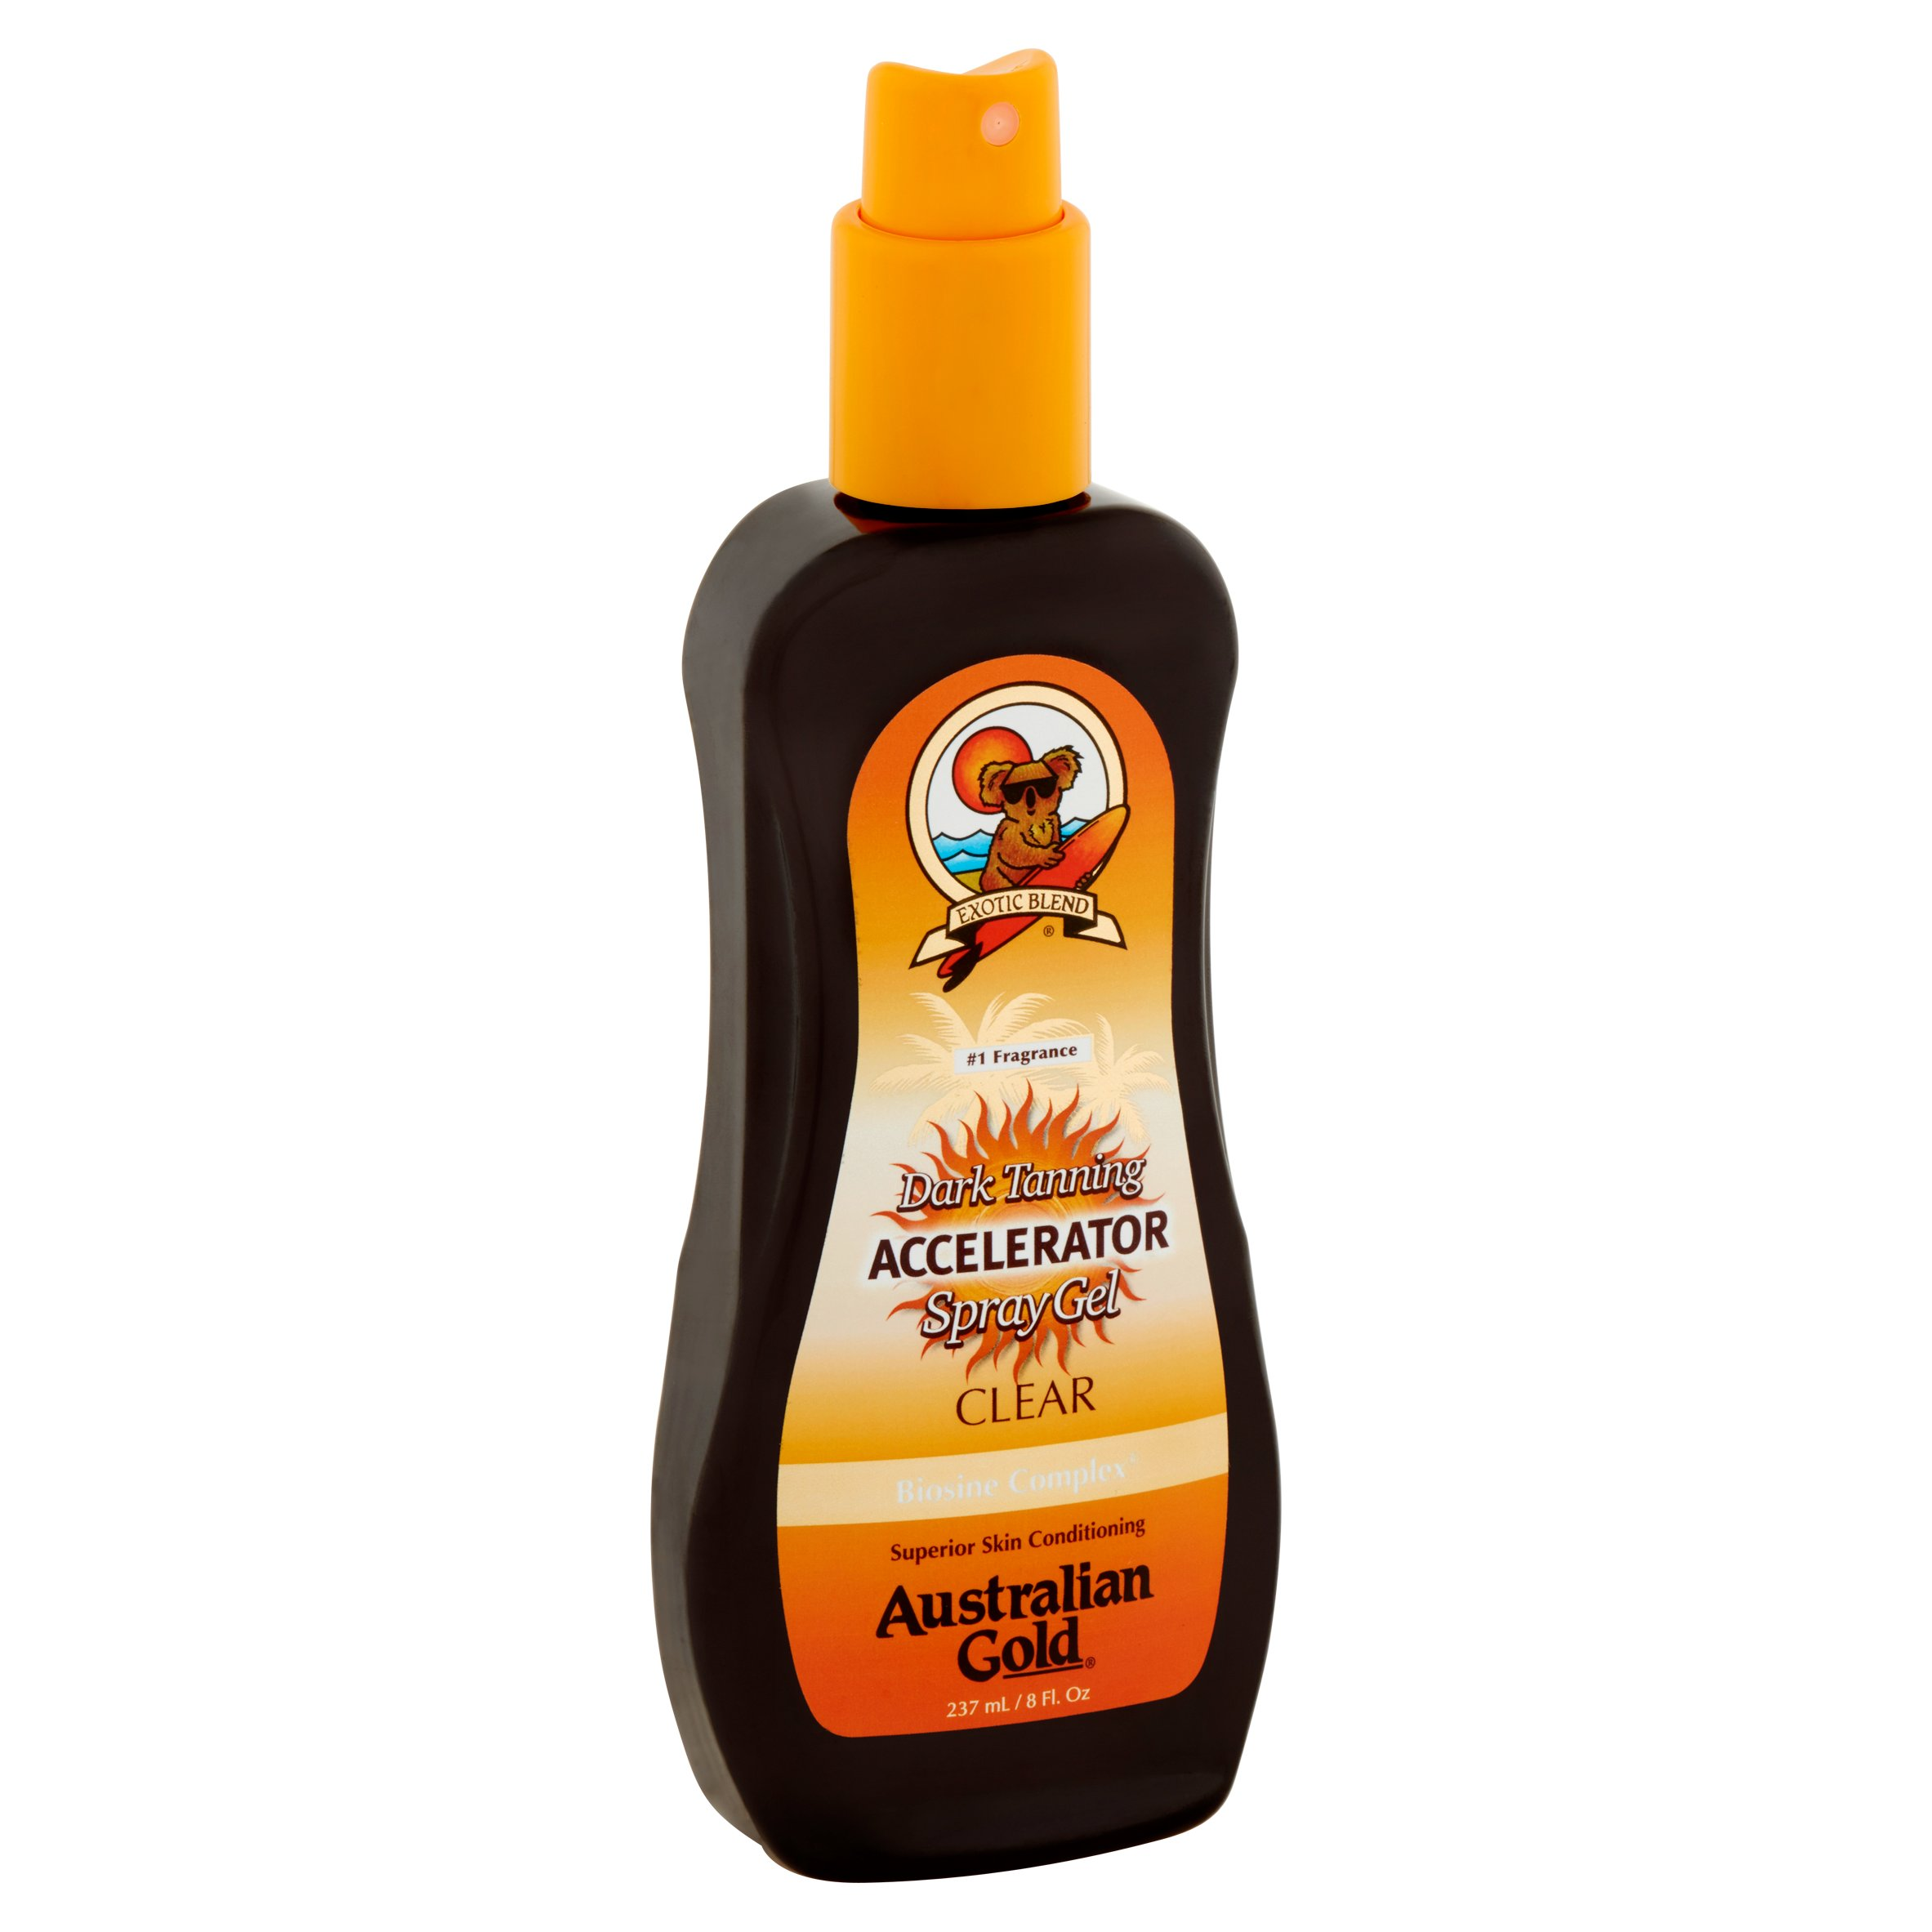 Dark Tanning Accelerator Spray Australian Gold, 8 fl oz Tanning Oil